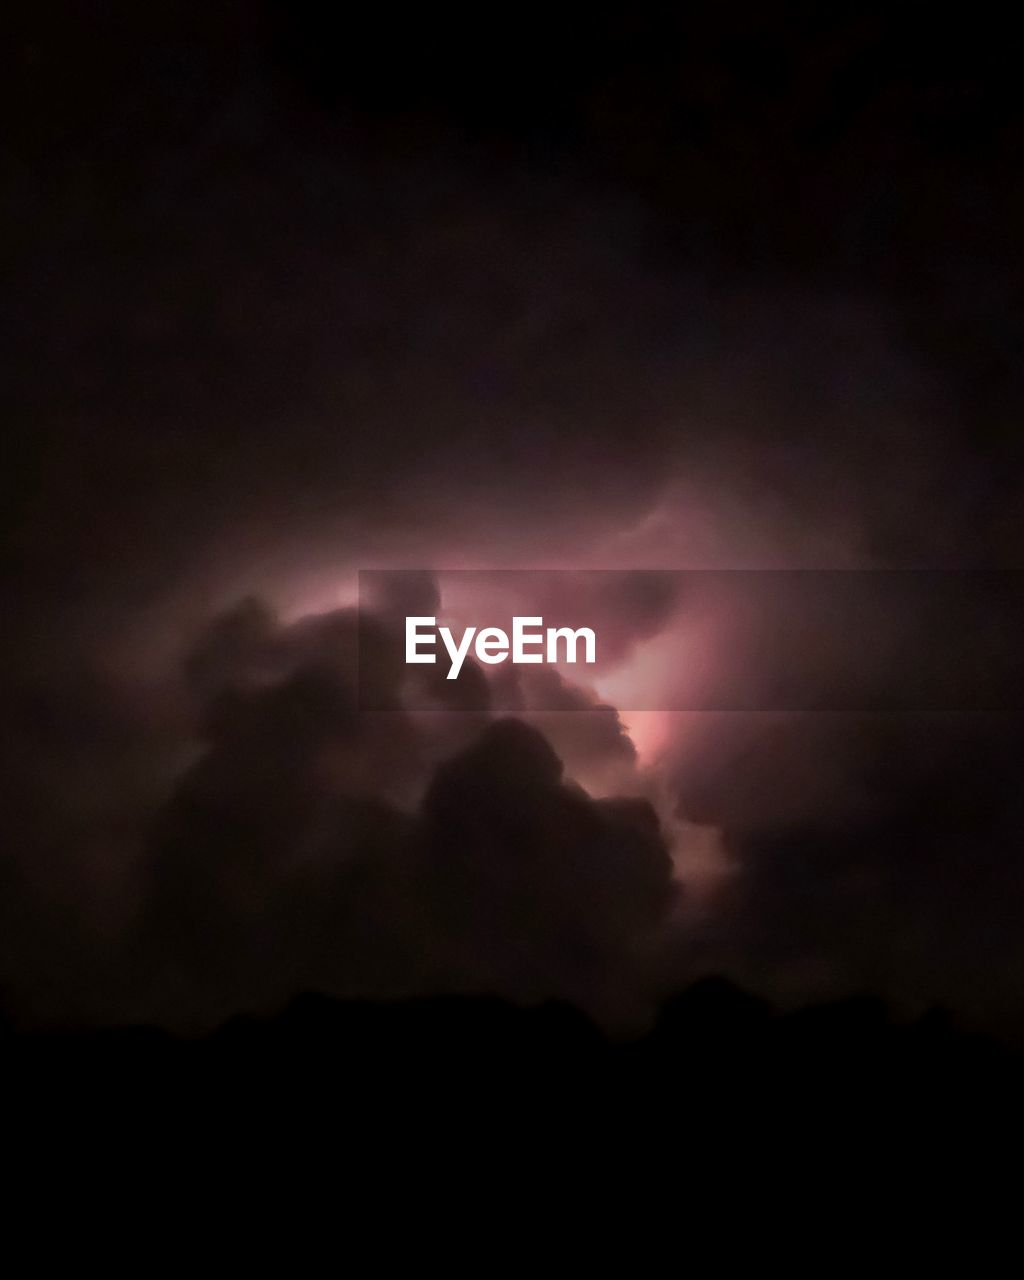 nature, beauty in nature, sky, cloud - sky, scenics, silhouette, tranquility, majestic, dramatic sky, tranquil scene, weather, no people, outdoors, sunset, sky only, moon, storm cloud, night, lightning, thunderstorm, space, astronomy